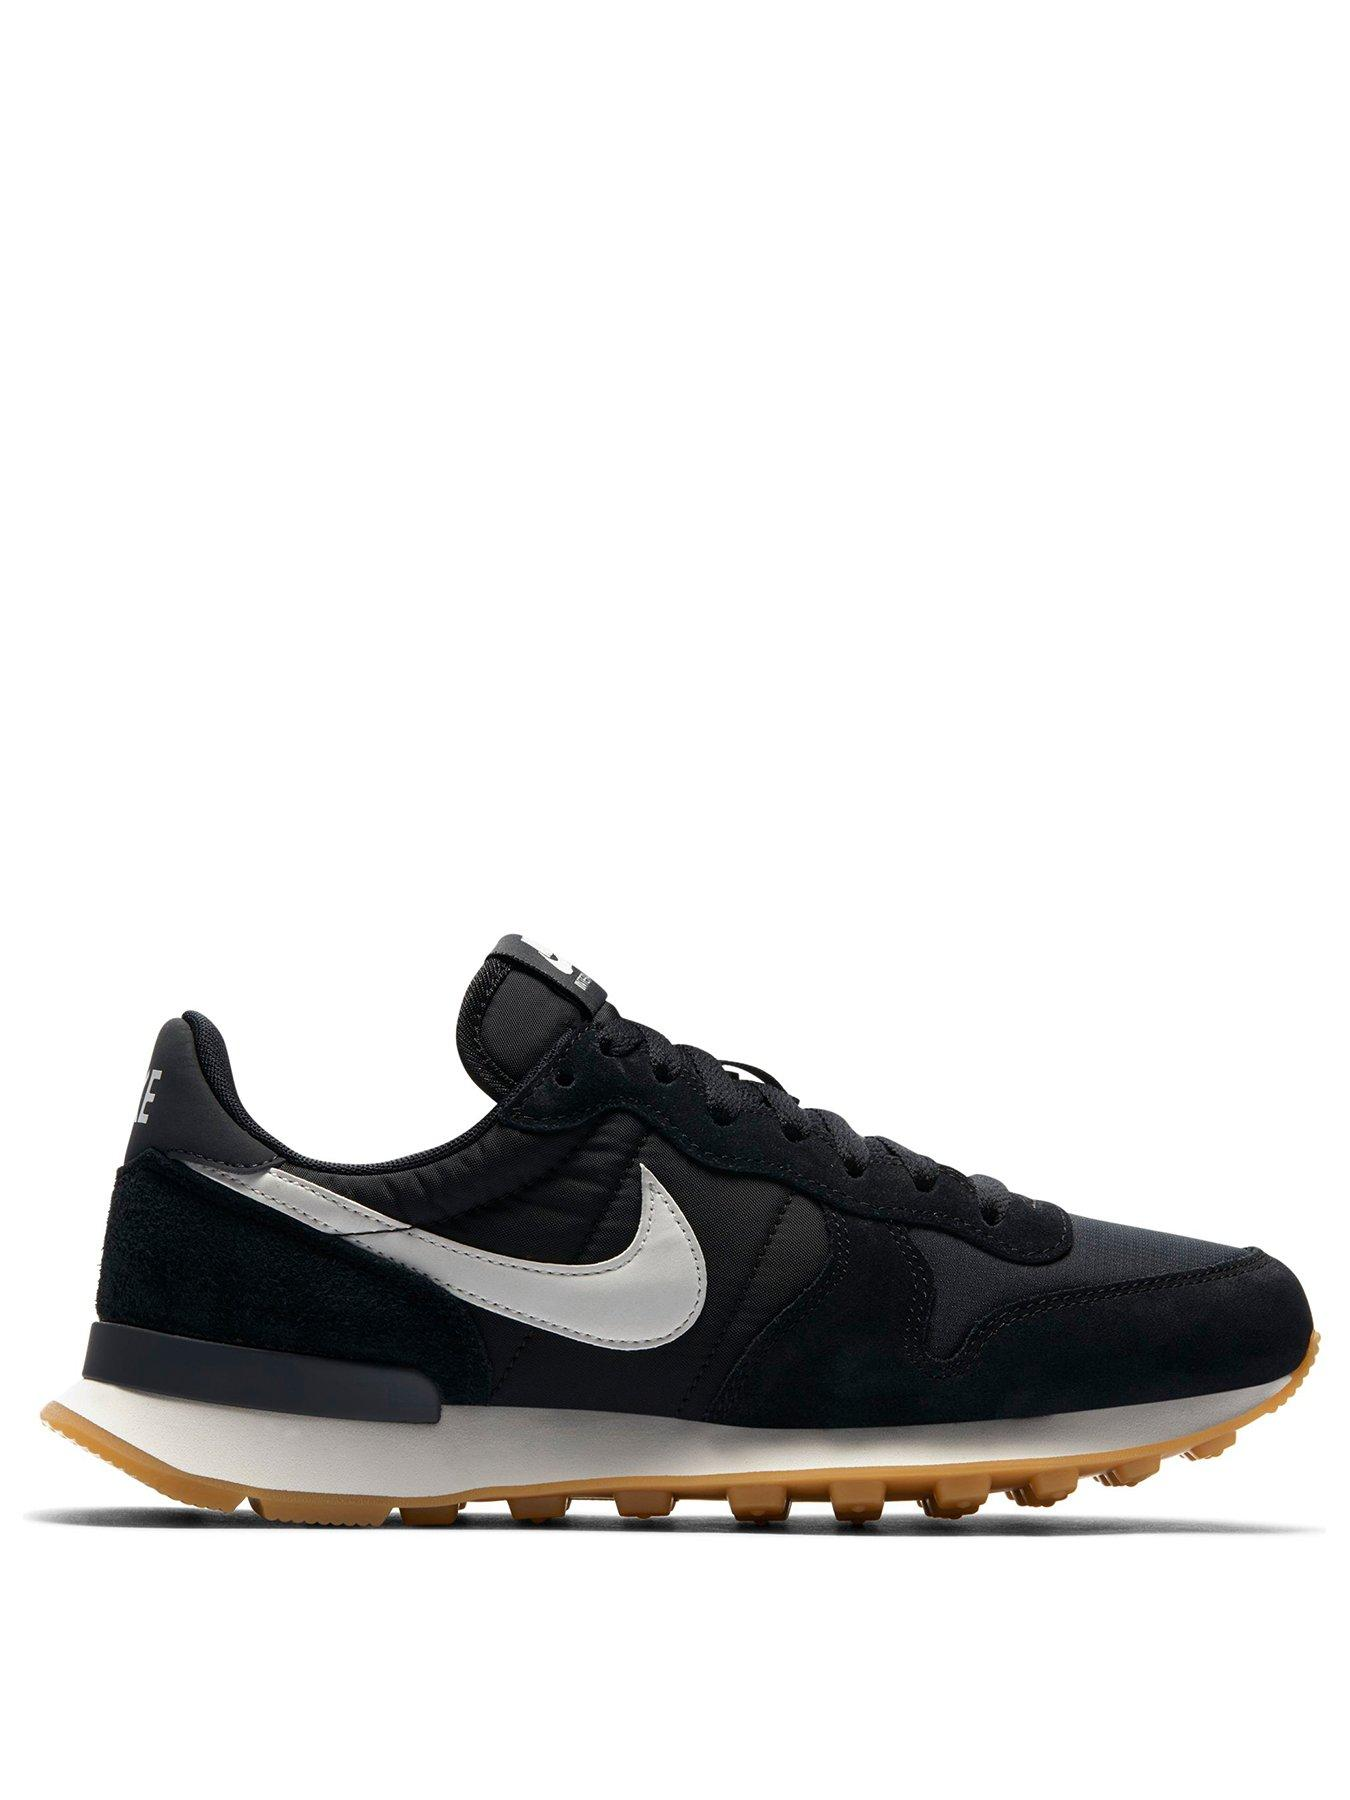 separation shoes 3b2a0 bbb2e ... discount code for nike internationalist black white 6f2a5 1daa5